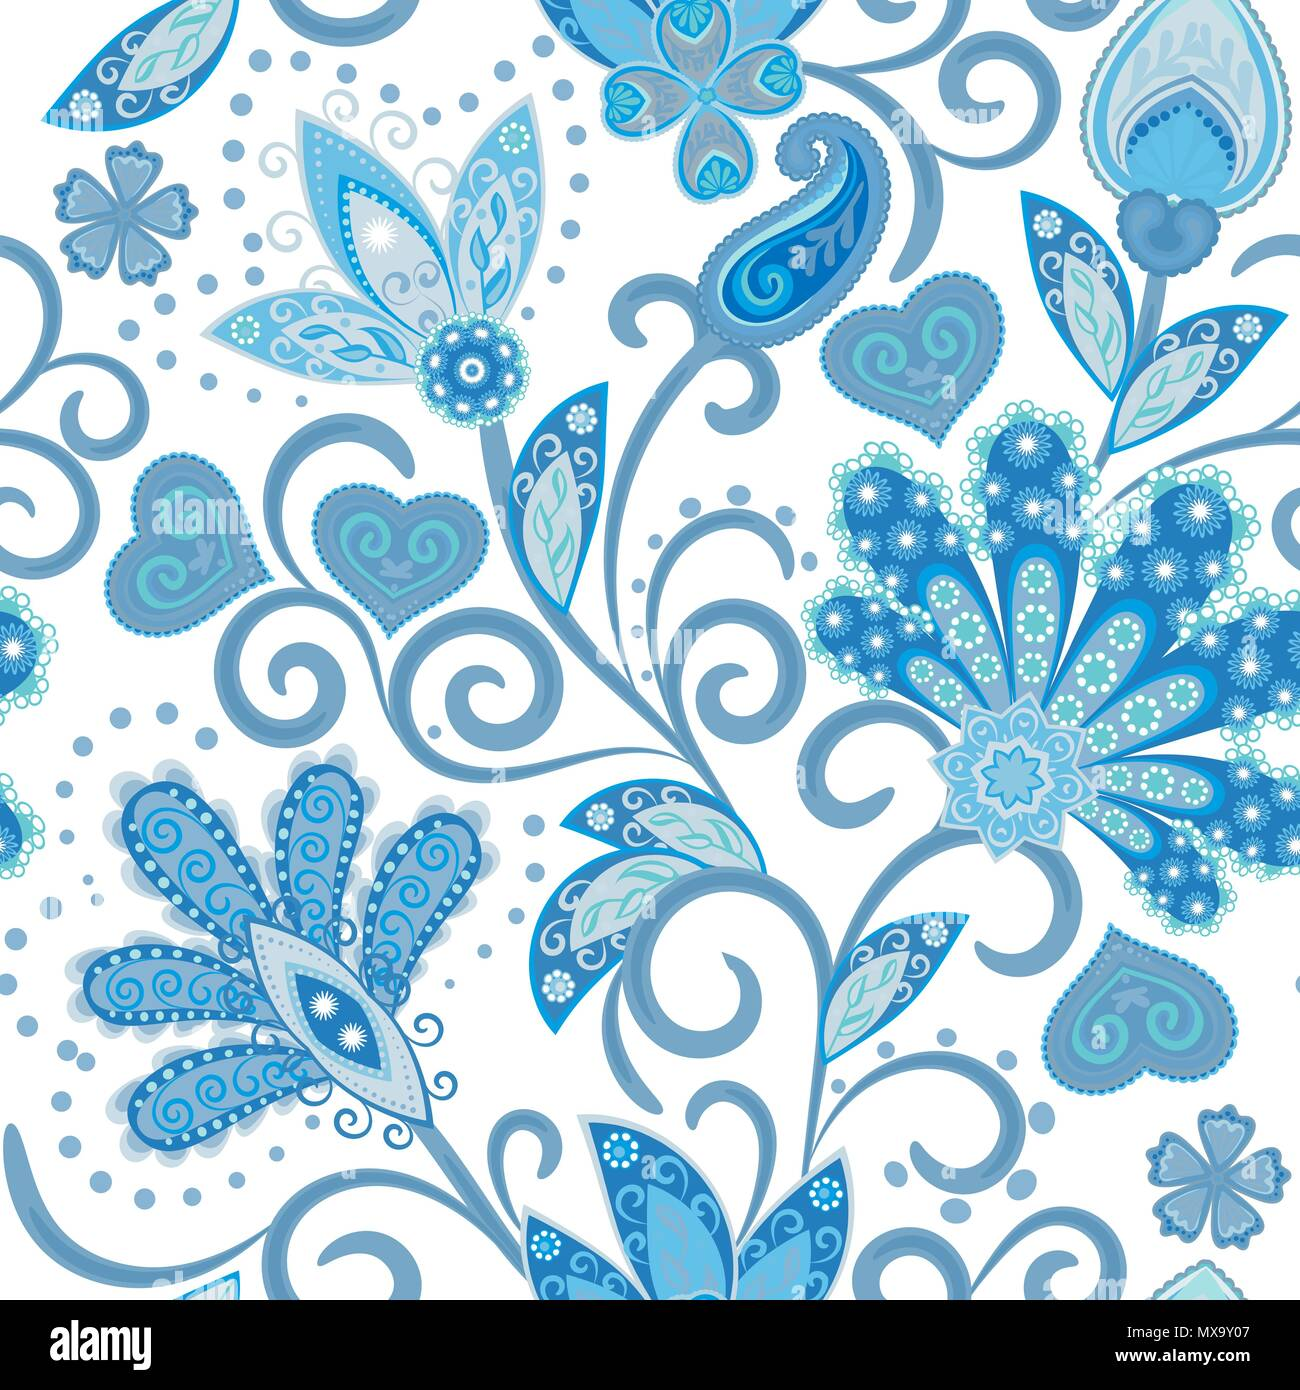 vintage pattern in indian batik style floral hand draw vector background blue on white stock vector image art alamy https www alamy com vintage pattern in indian batik style floral hand draw vector background blue on white image188303479 html